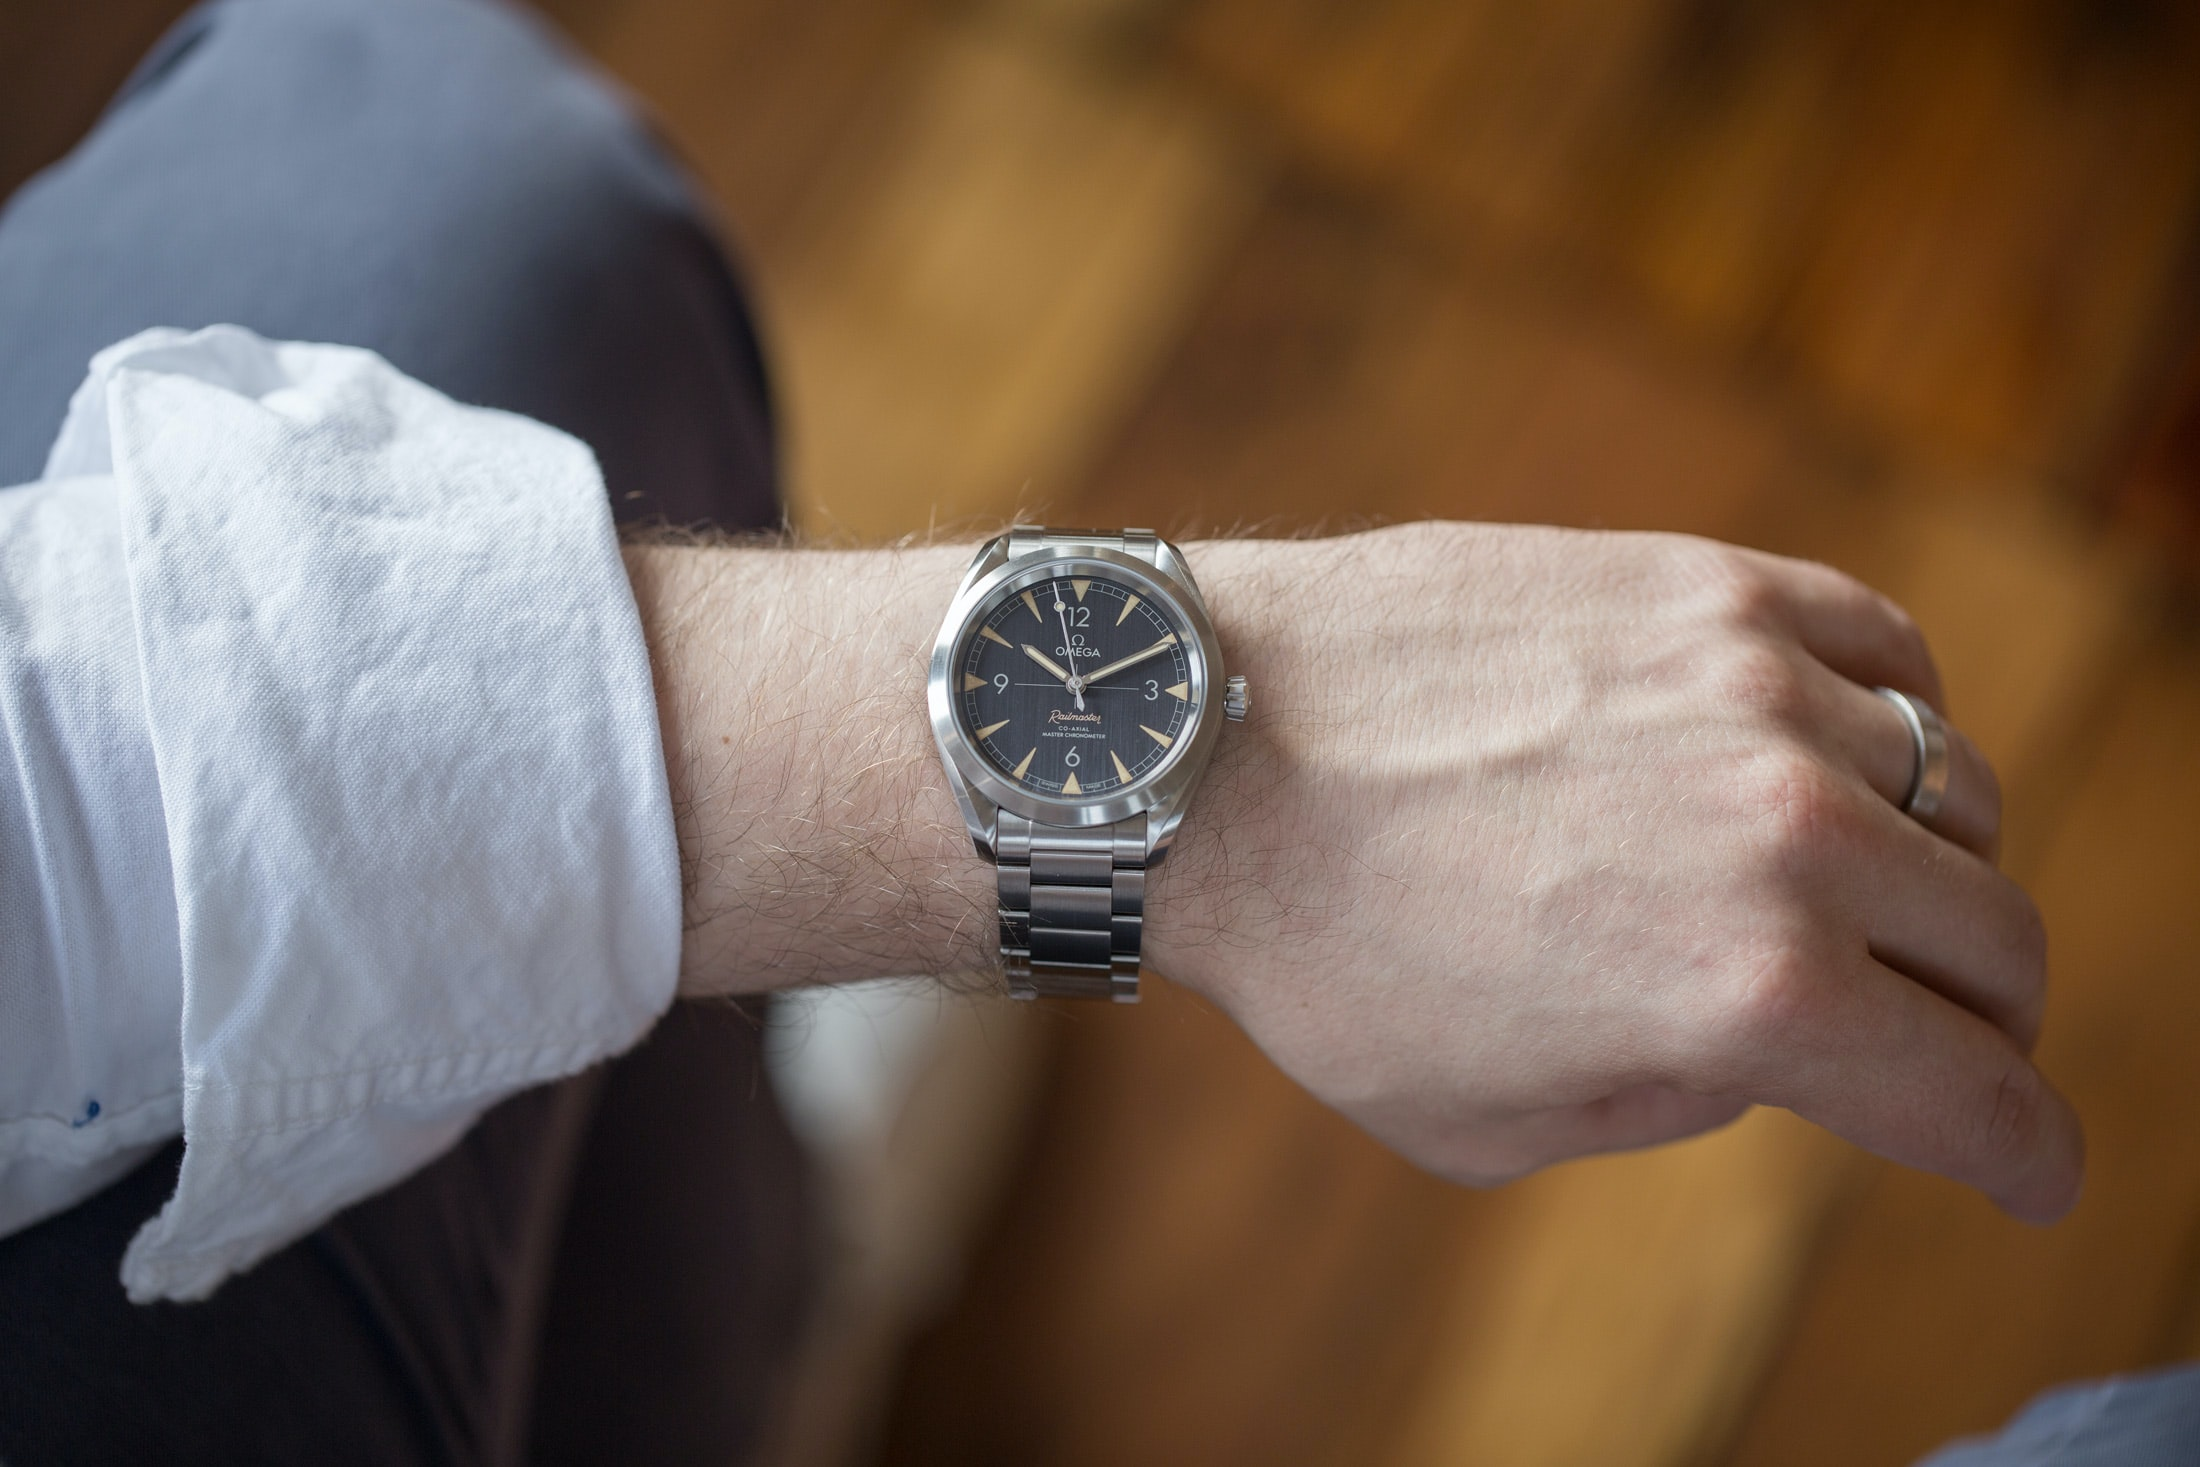 A Week On The Wrist: The Omega Seamaster Railmaster A Week On The Wrist: The Omega Seamaster Railmaster rail 03